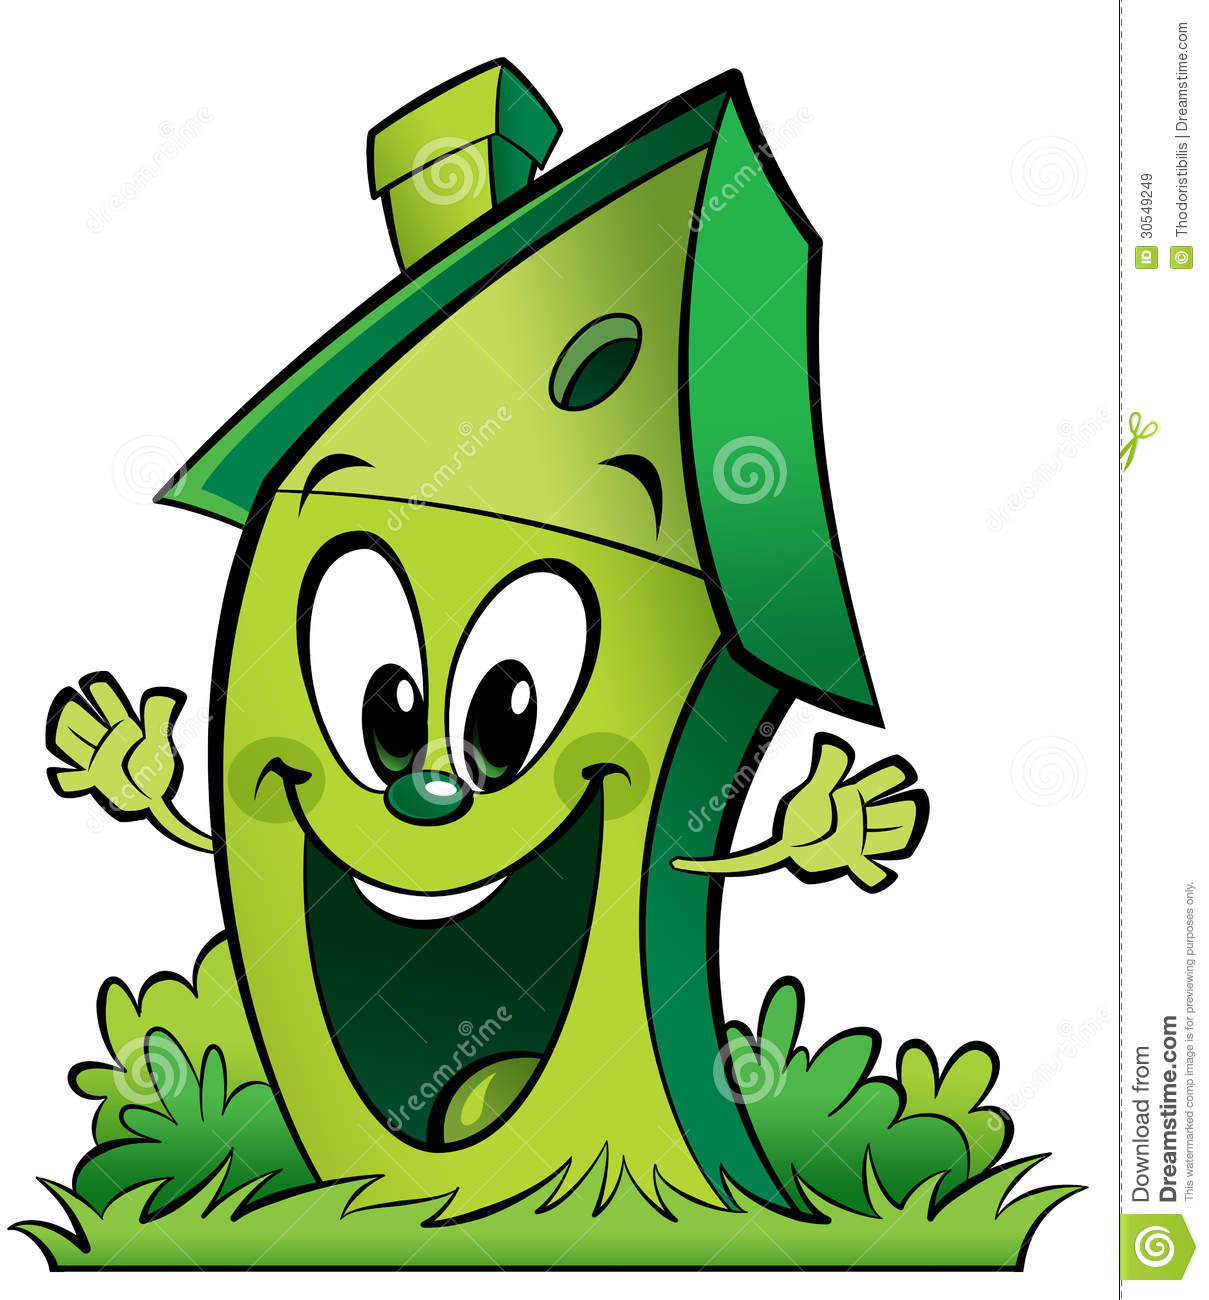 Happy Cartoon Green Ecological Home Royalty Free Stock